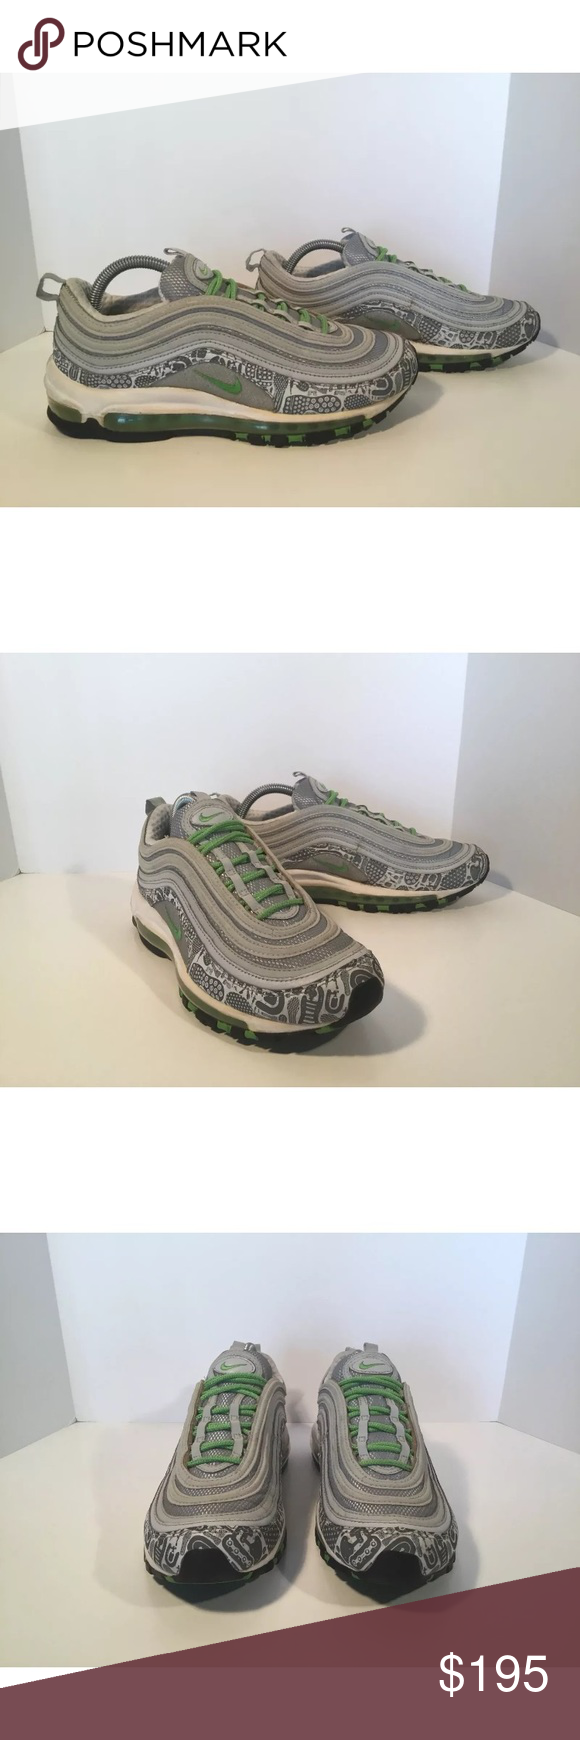 Nike Air Max 97 10.5 Size Athletic Shoes for Men for sale eBay